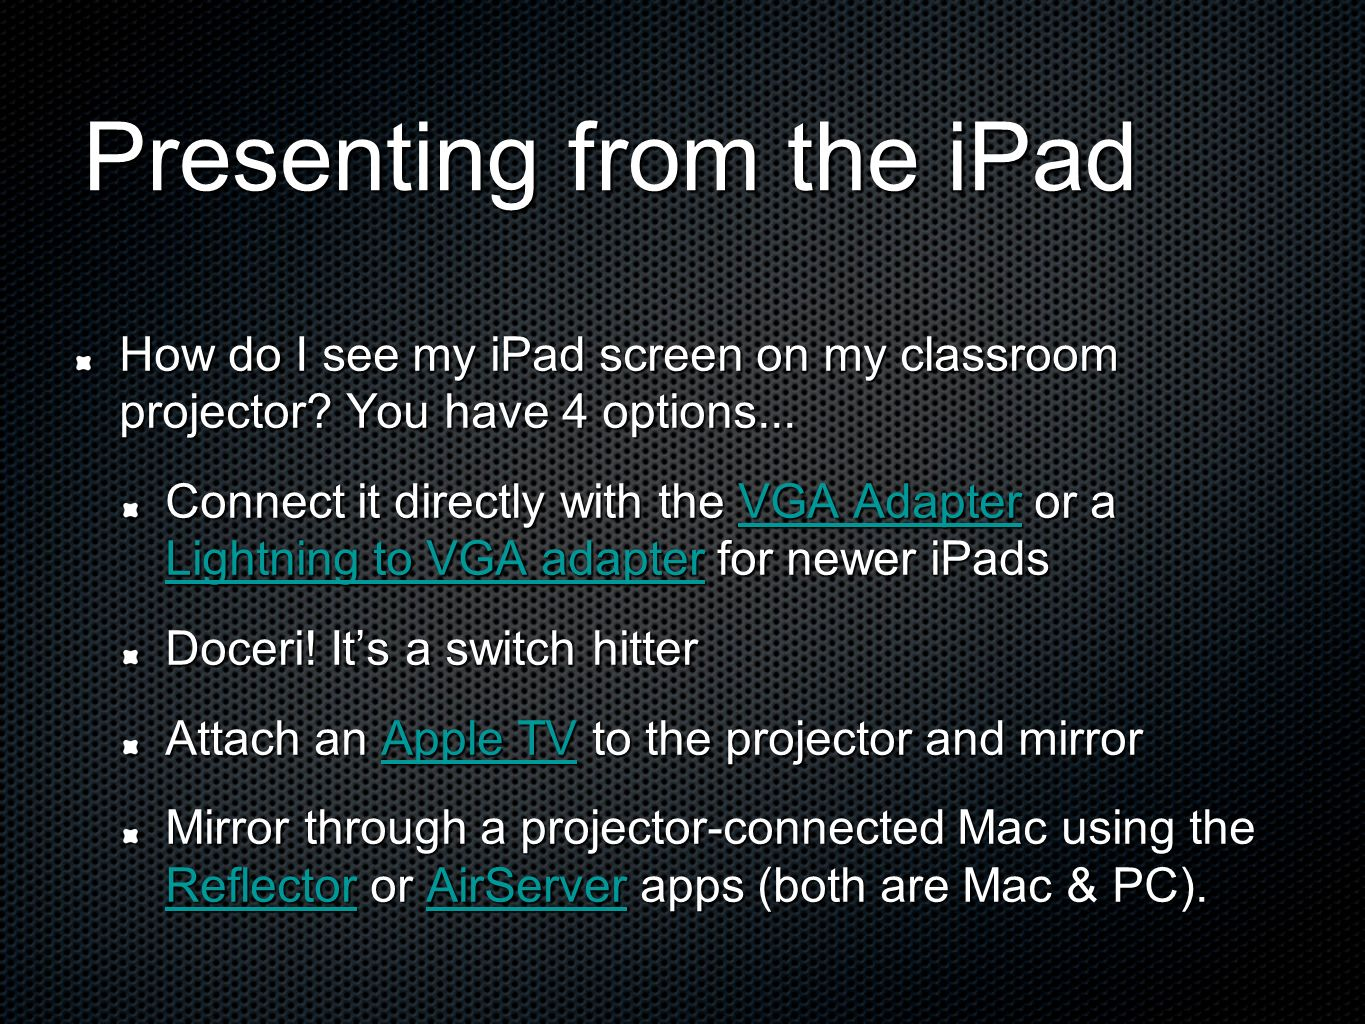 How do I see my iPad screen on my classroom projector? You have 4 options... Connect it directly with the VGA Adapter or a Lightning to VGA adapter fo